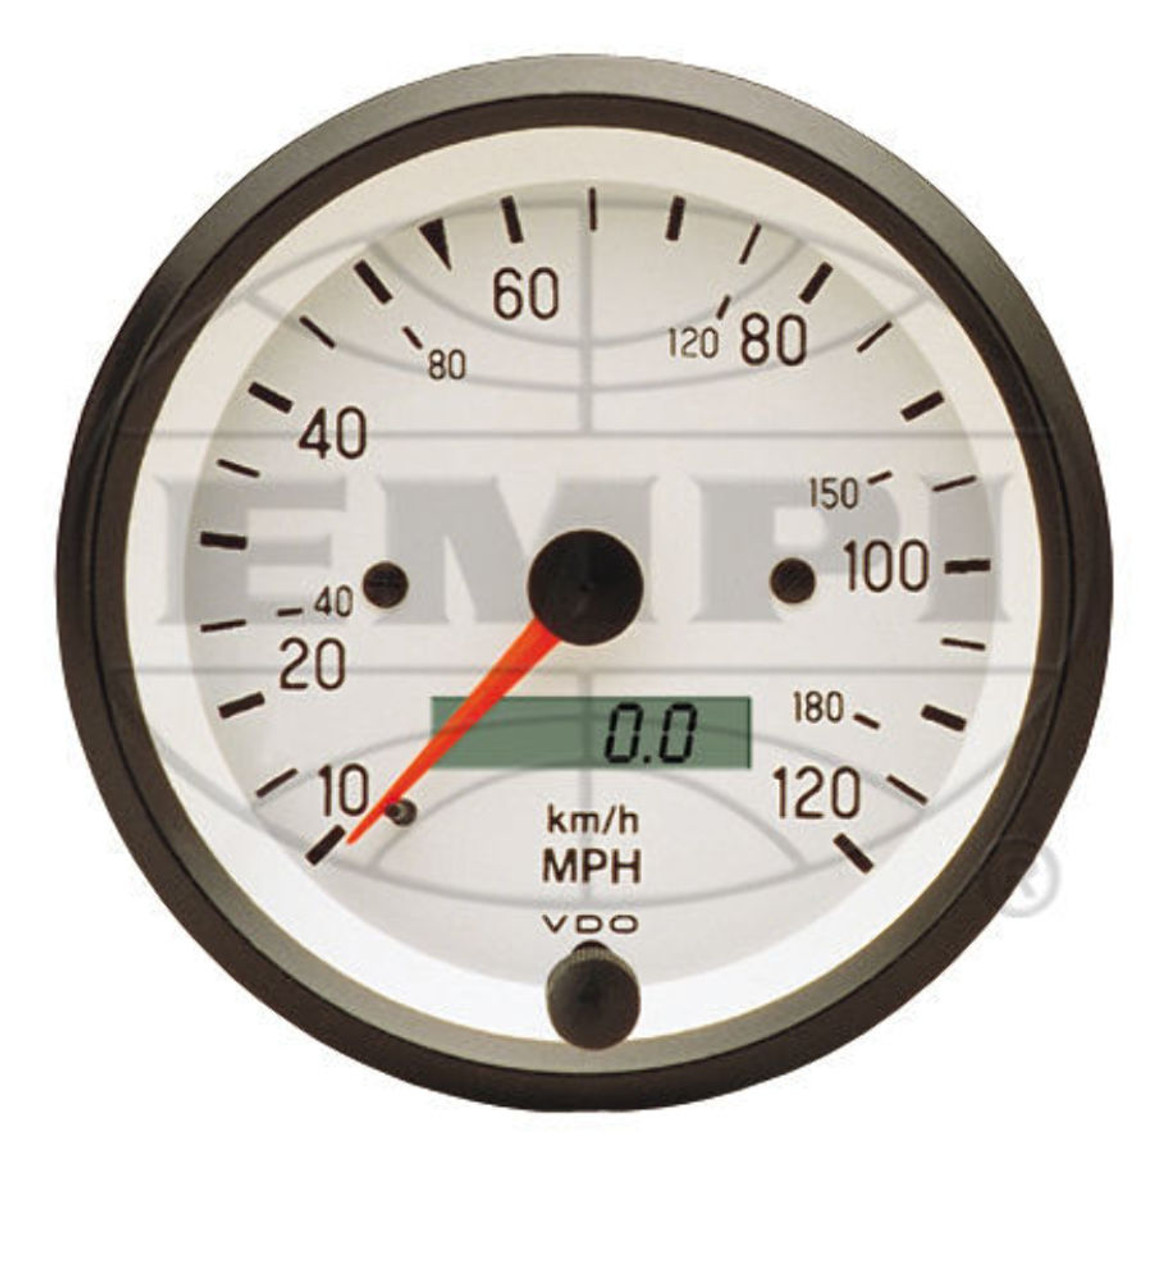 Cockpit Speedometer, White, 120 Mph, 3-3/8, Fits VW Bug Air Cooled, VDO 437202